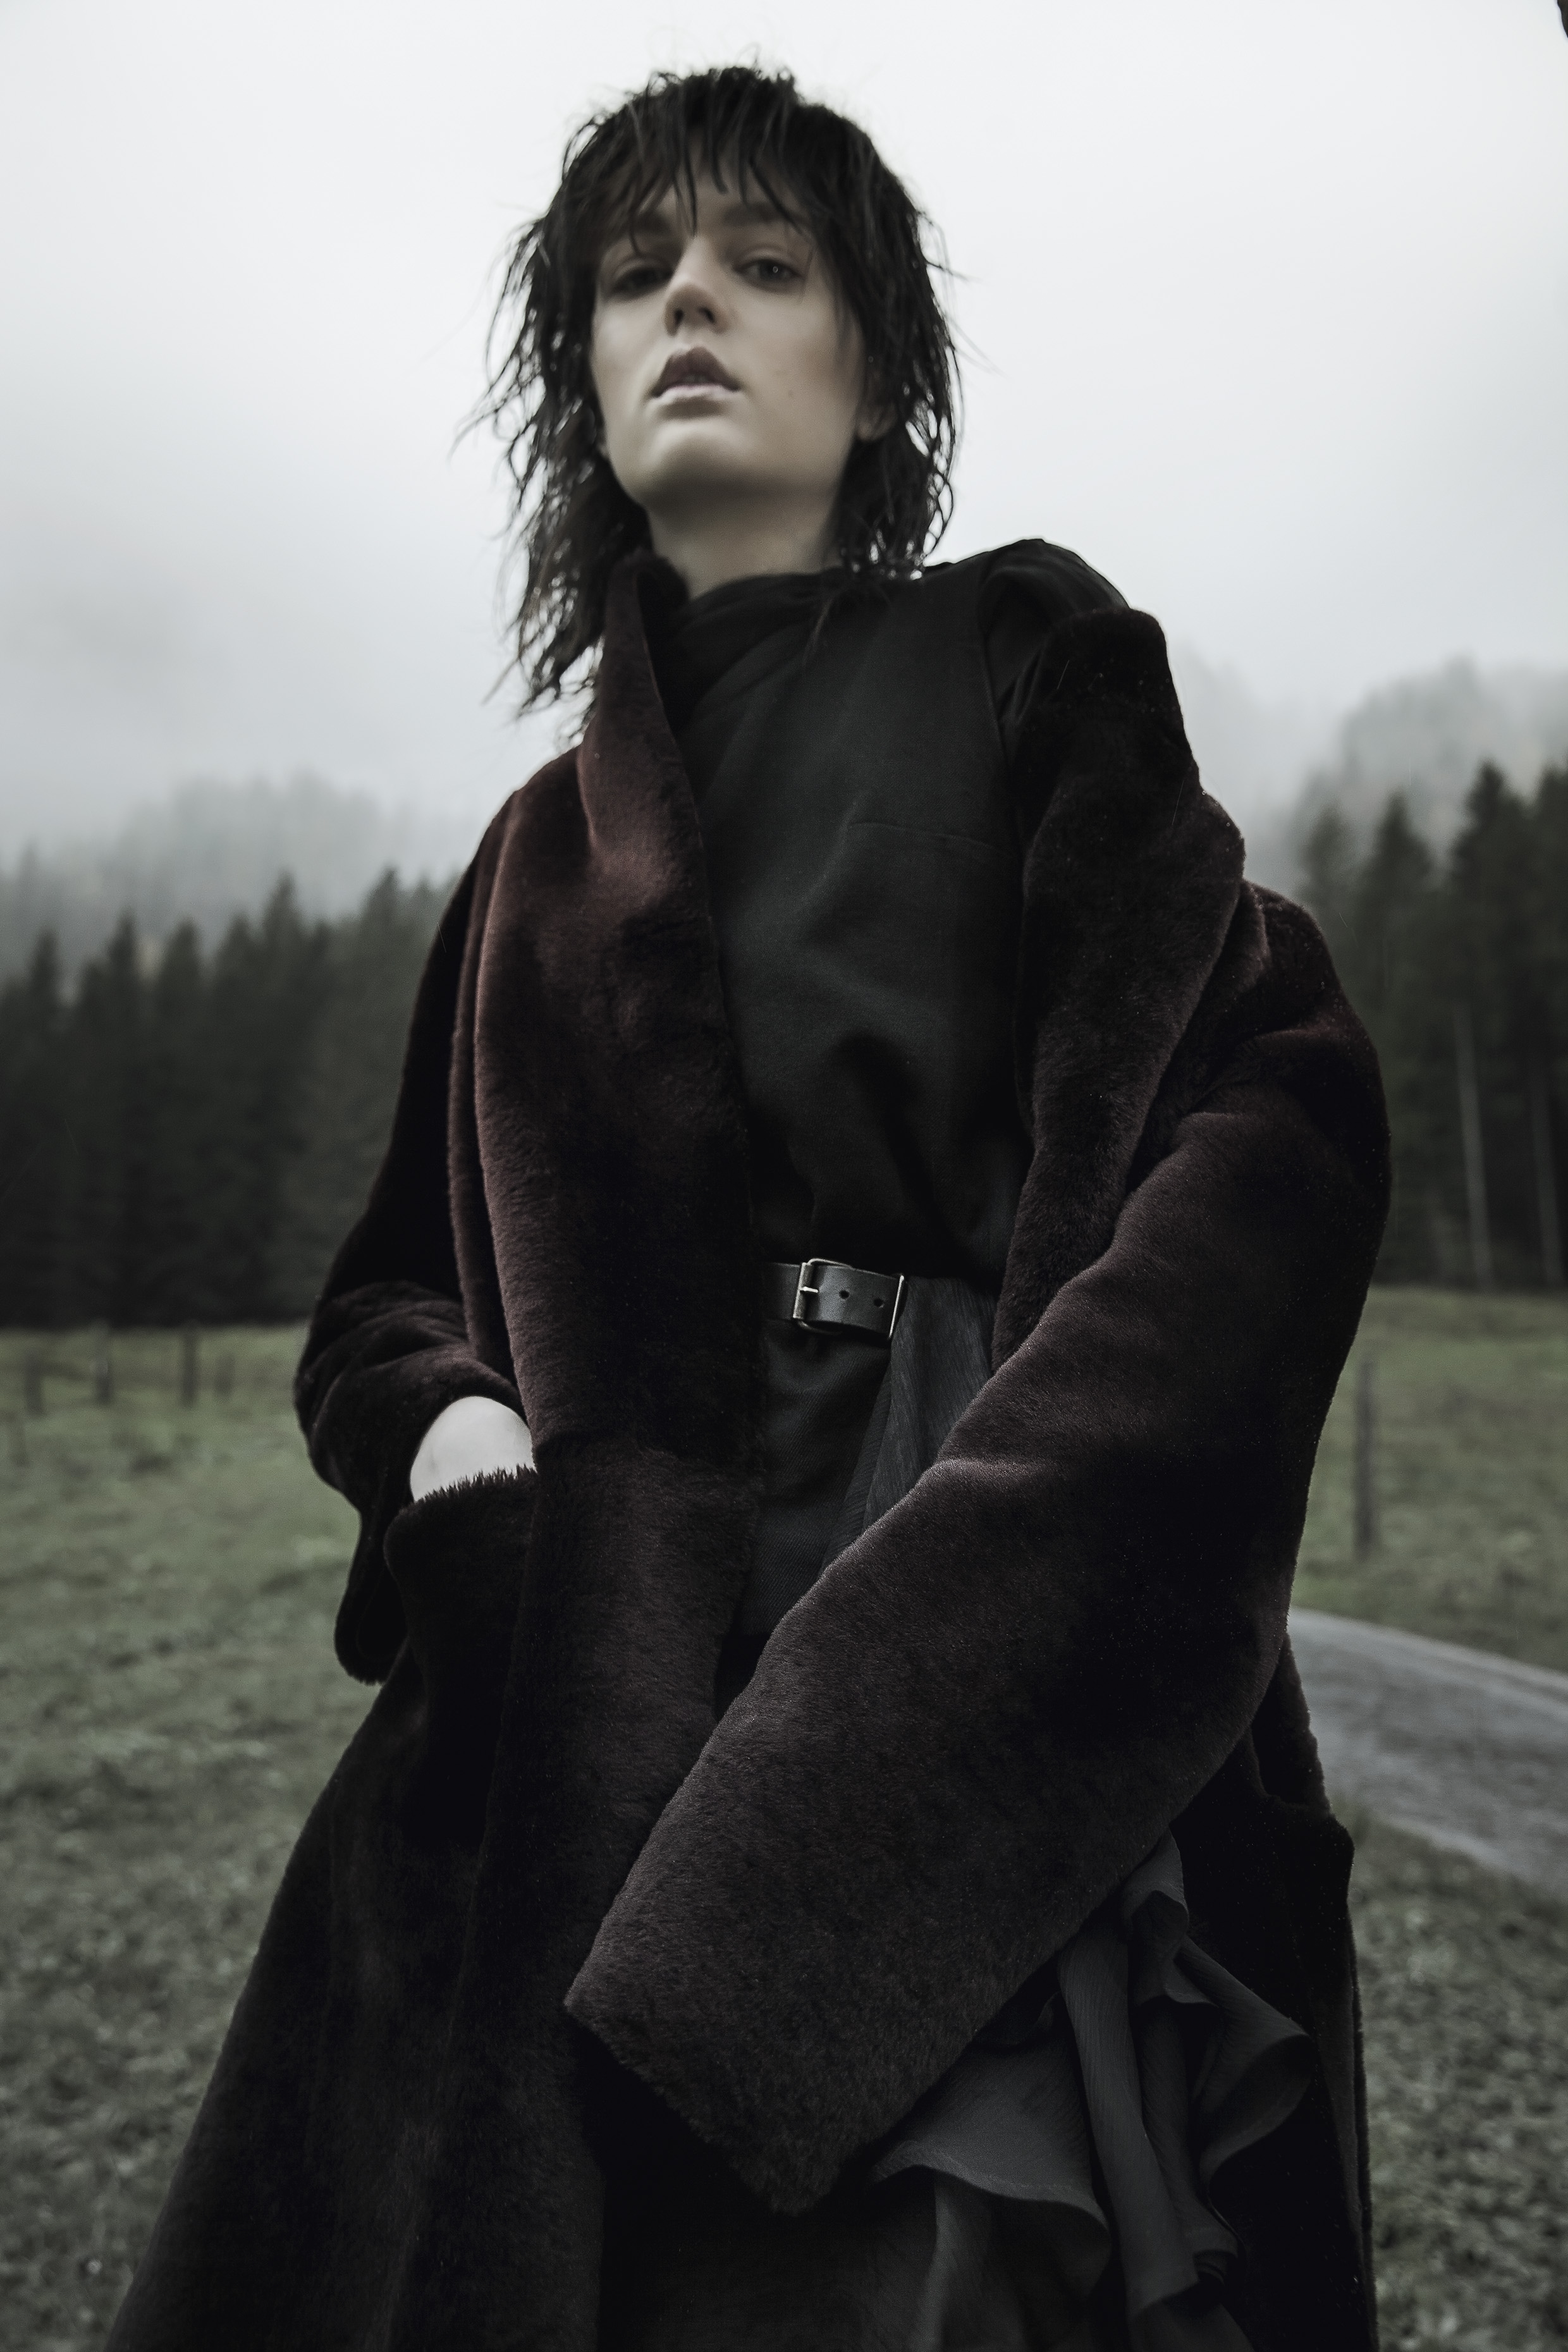 Burgundy shearling fur coat by Ines et Marechal | Black chiffon flared dress by Olivier Theyskens | Burgundy leather legging by Ines et Marechal | Black leather belt by Lanvin